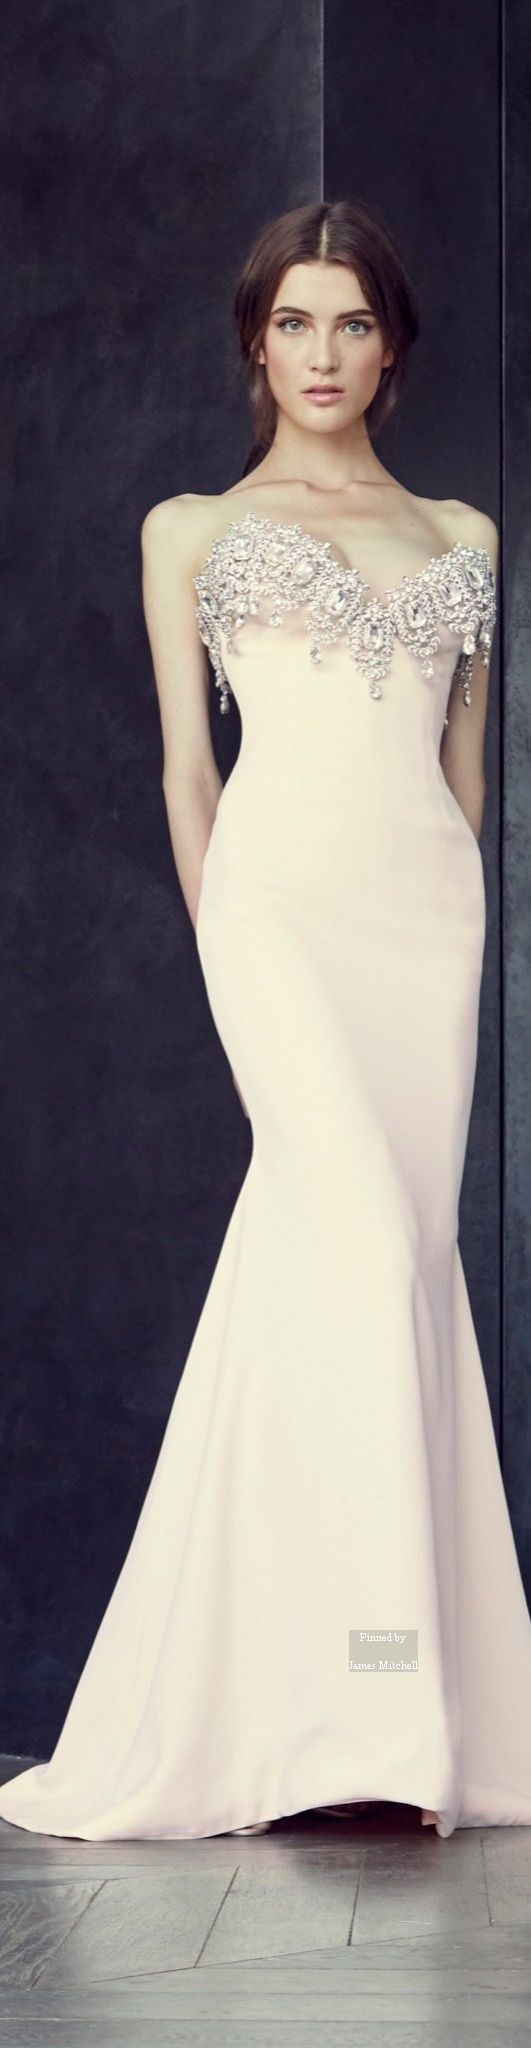 Alexis Mabille Fall 2015 Couture #coupon code nicesup123 gets 25% off at  Provestra.com Skinception.com